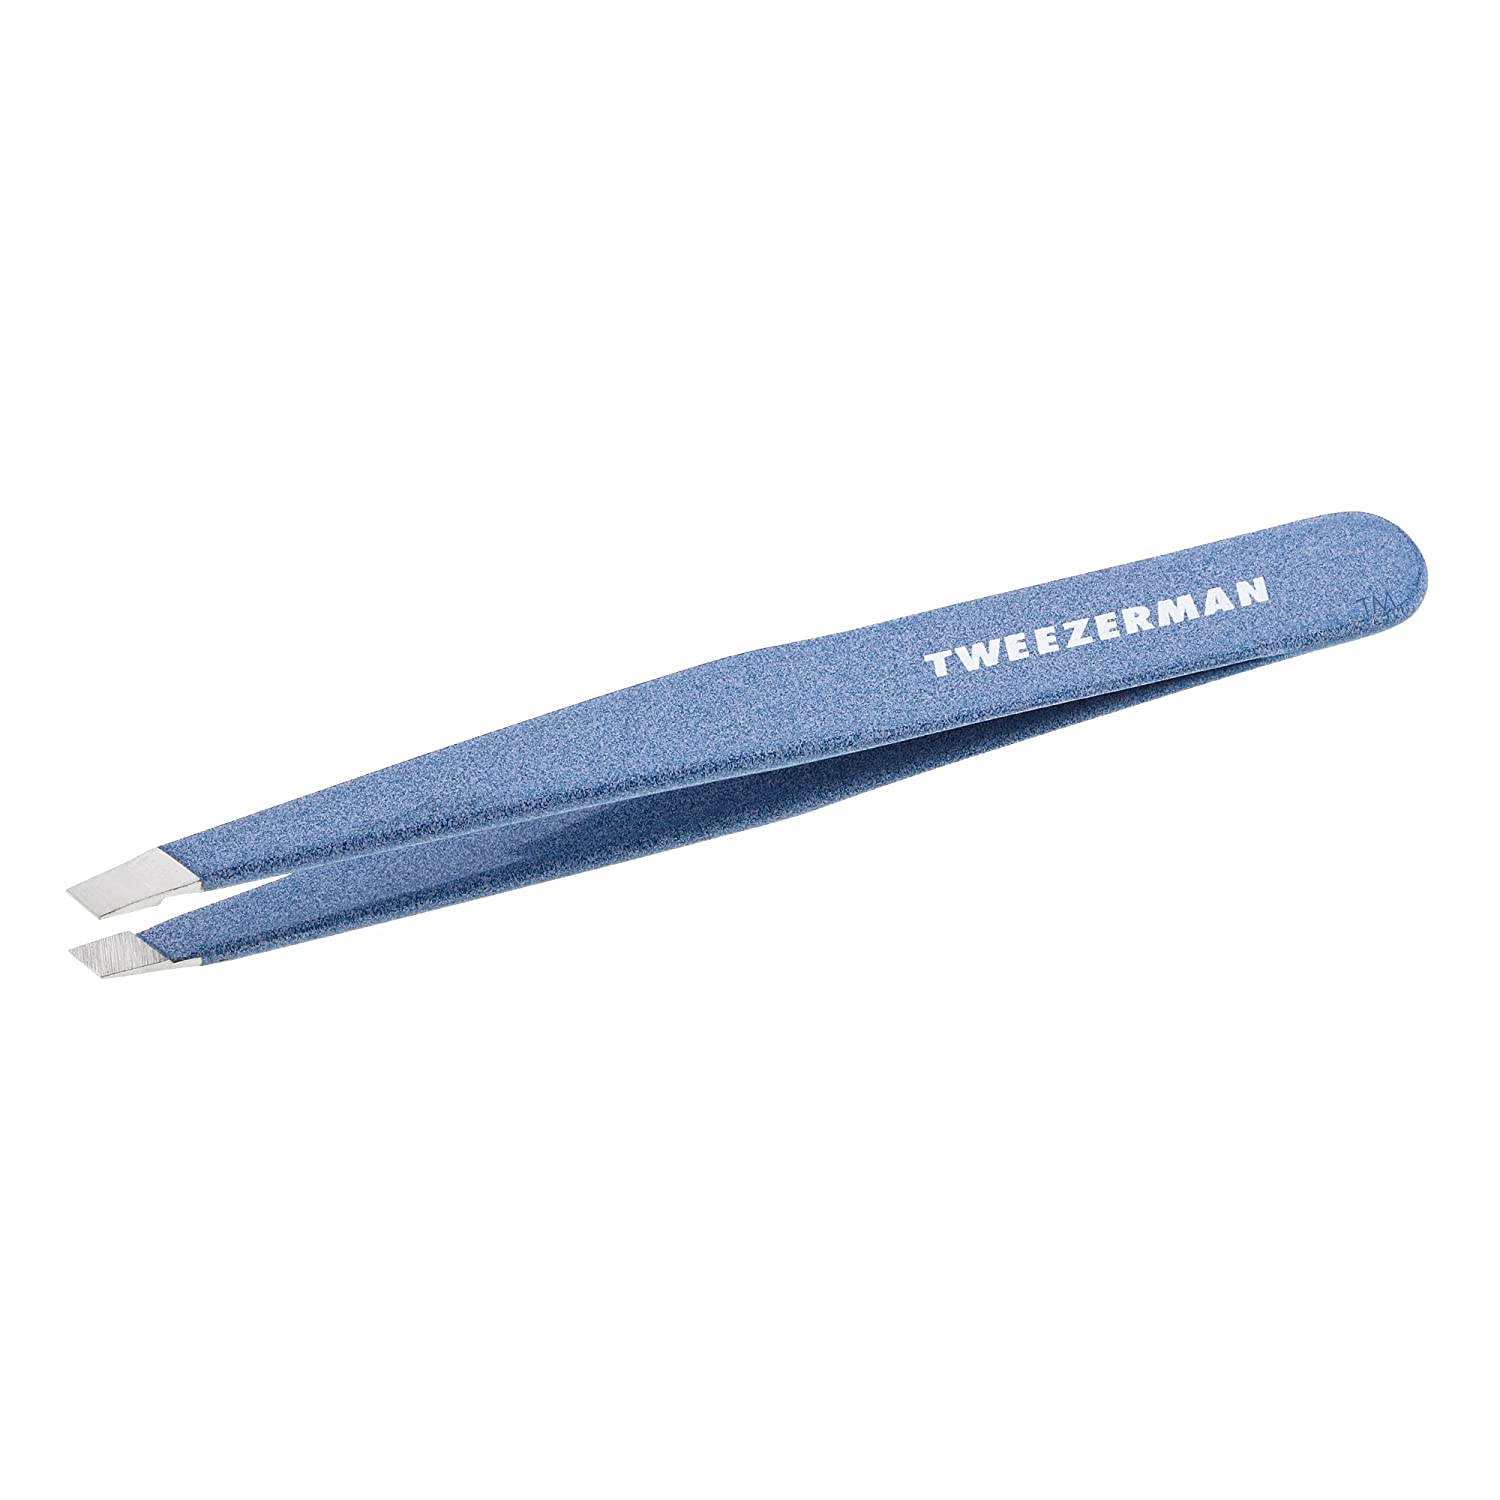 Tweezerman Slant Tweezer, Black 1230-br